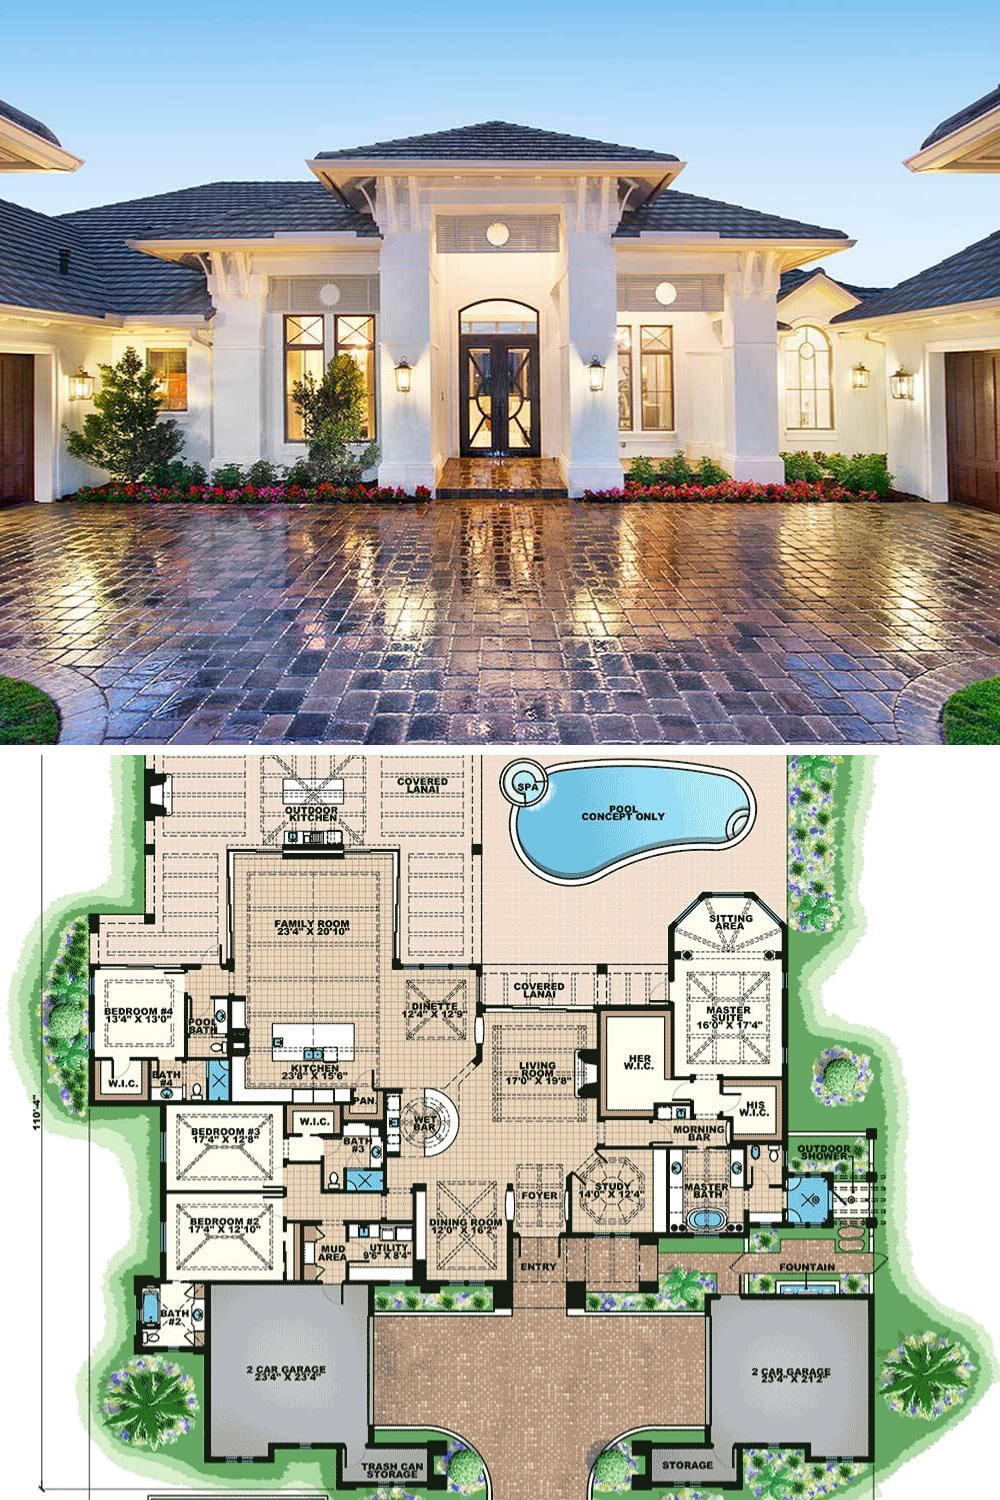 Single Story 4 Bedroom Luxurious Mediterranean Home Floor Plan House Plans Mansion Florida House Plans Beautiful House Plans